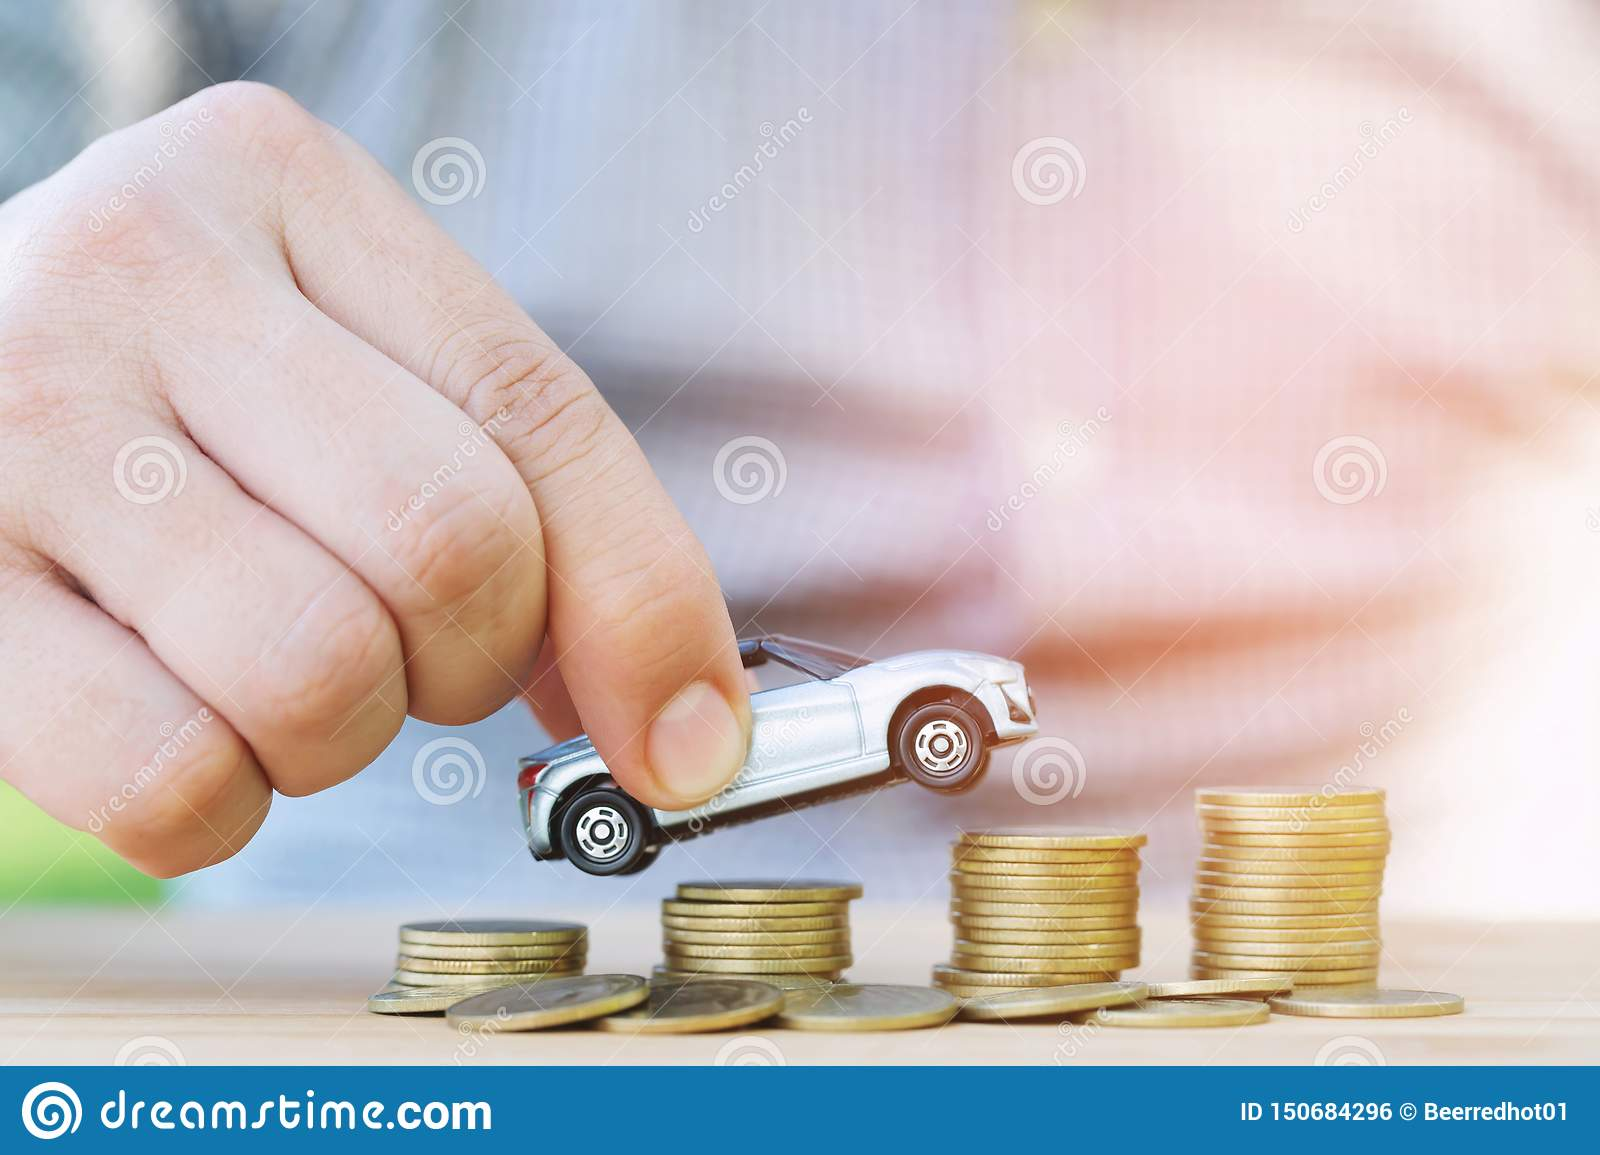 Business Man And Close Up Hand Holding Model Of Toy Car On